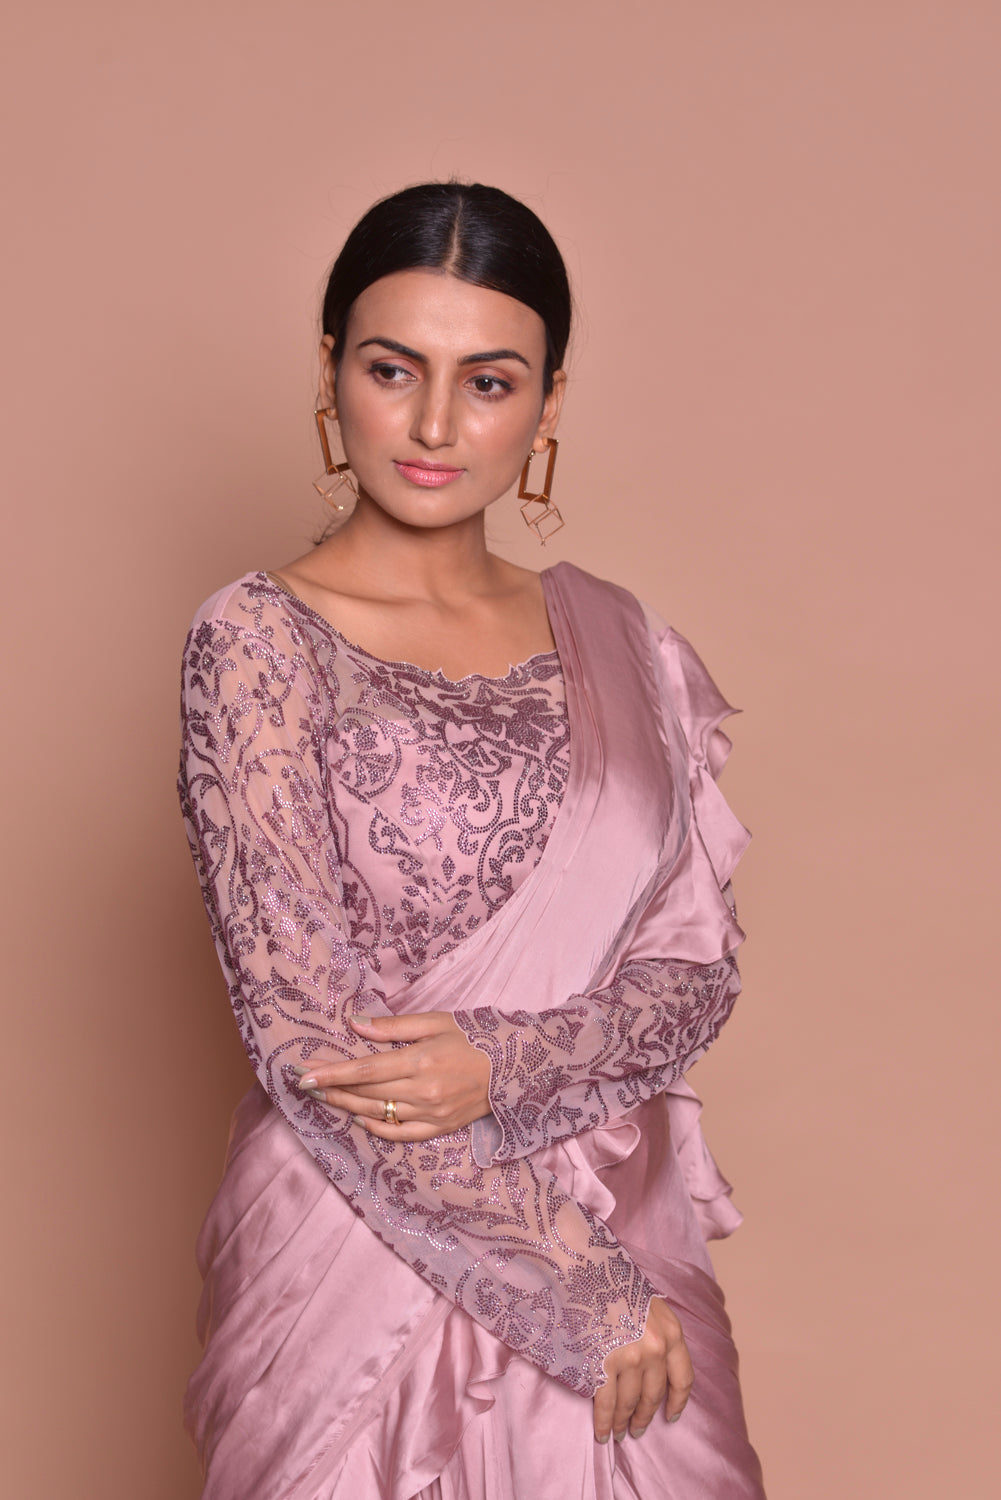 Buy stylish onion pink ruffled saree online in USA with full sleeves blouse. Look fashionable on special occasions in contemporary sarees, designer sarees with blouse, embroidered saris from Pure Elegance Indian luxury clothing store in USA.-closeup